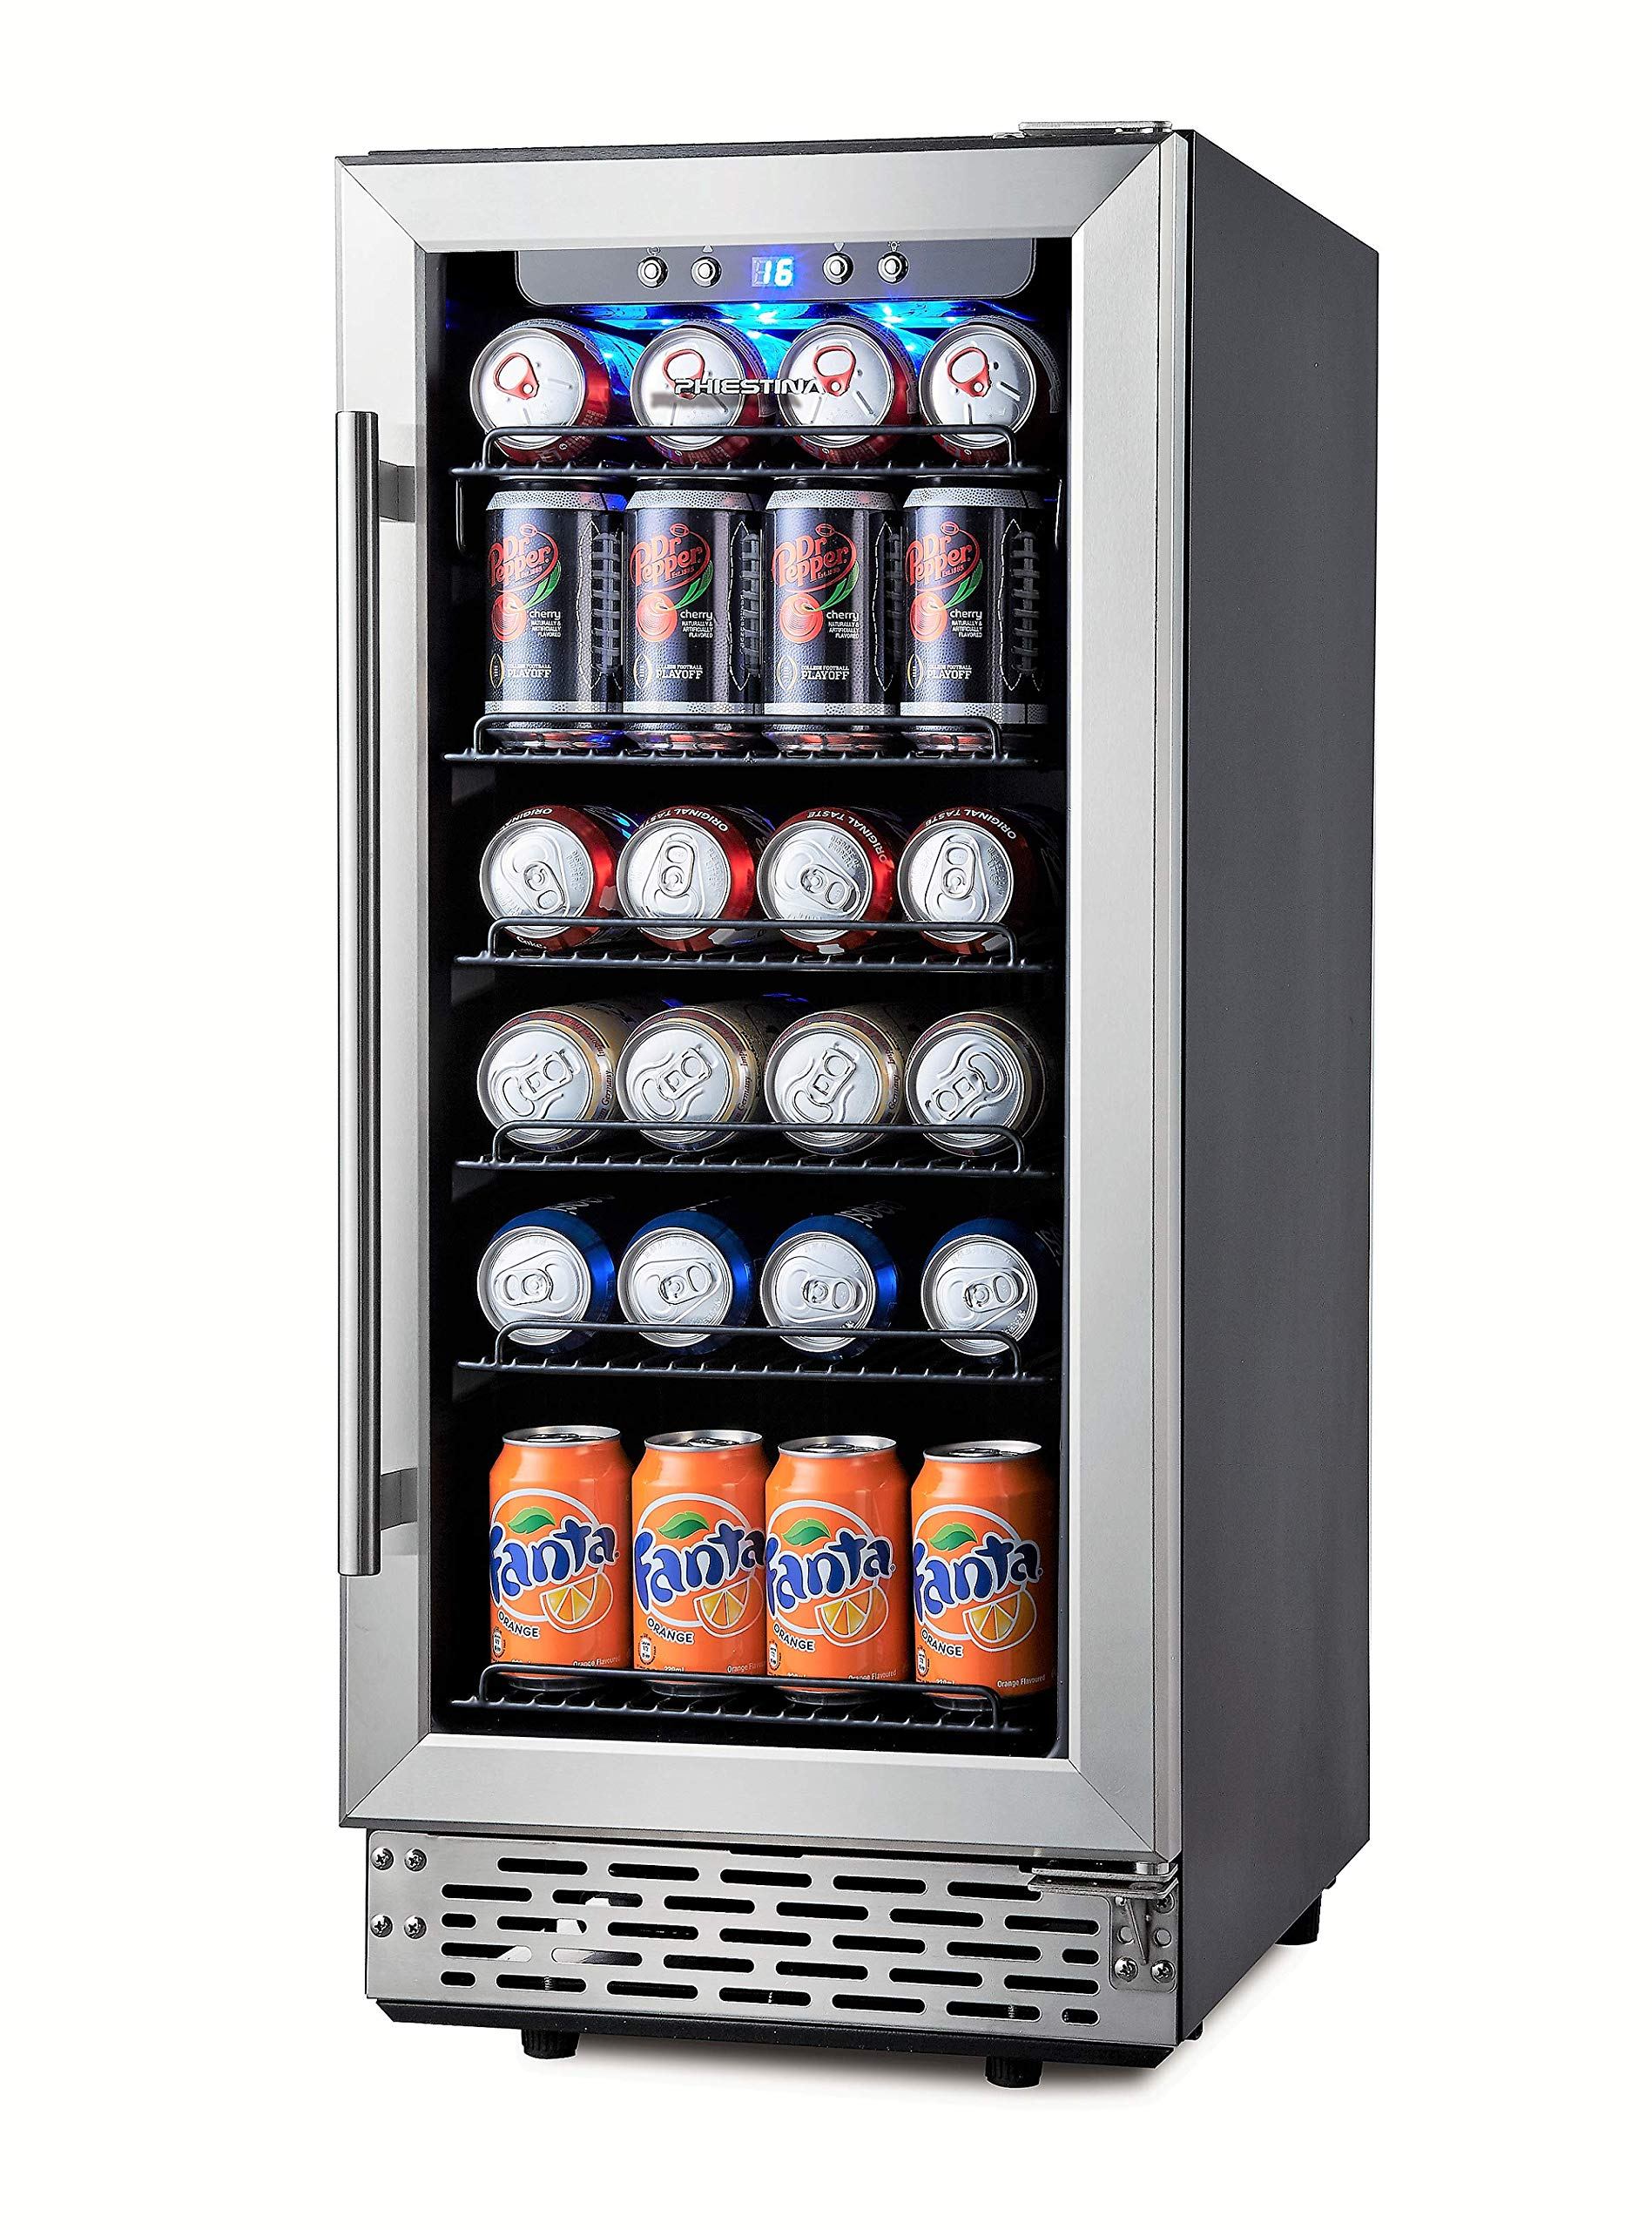 Phiestina 15 Inch Beverage Cooler Refrigerator - 96 Can Built-in or Free Standing Beverage Fridge with Glass Door for Soda Beer or Wine - Compact Drink Fridge For Home Bar or Office by Phiestina